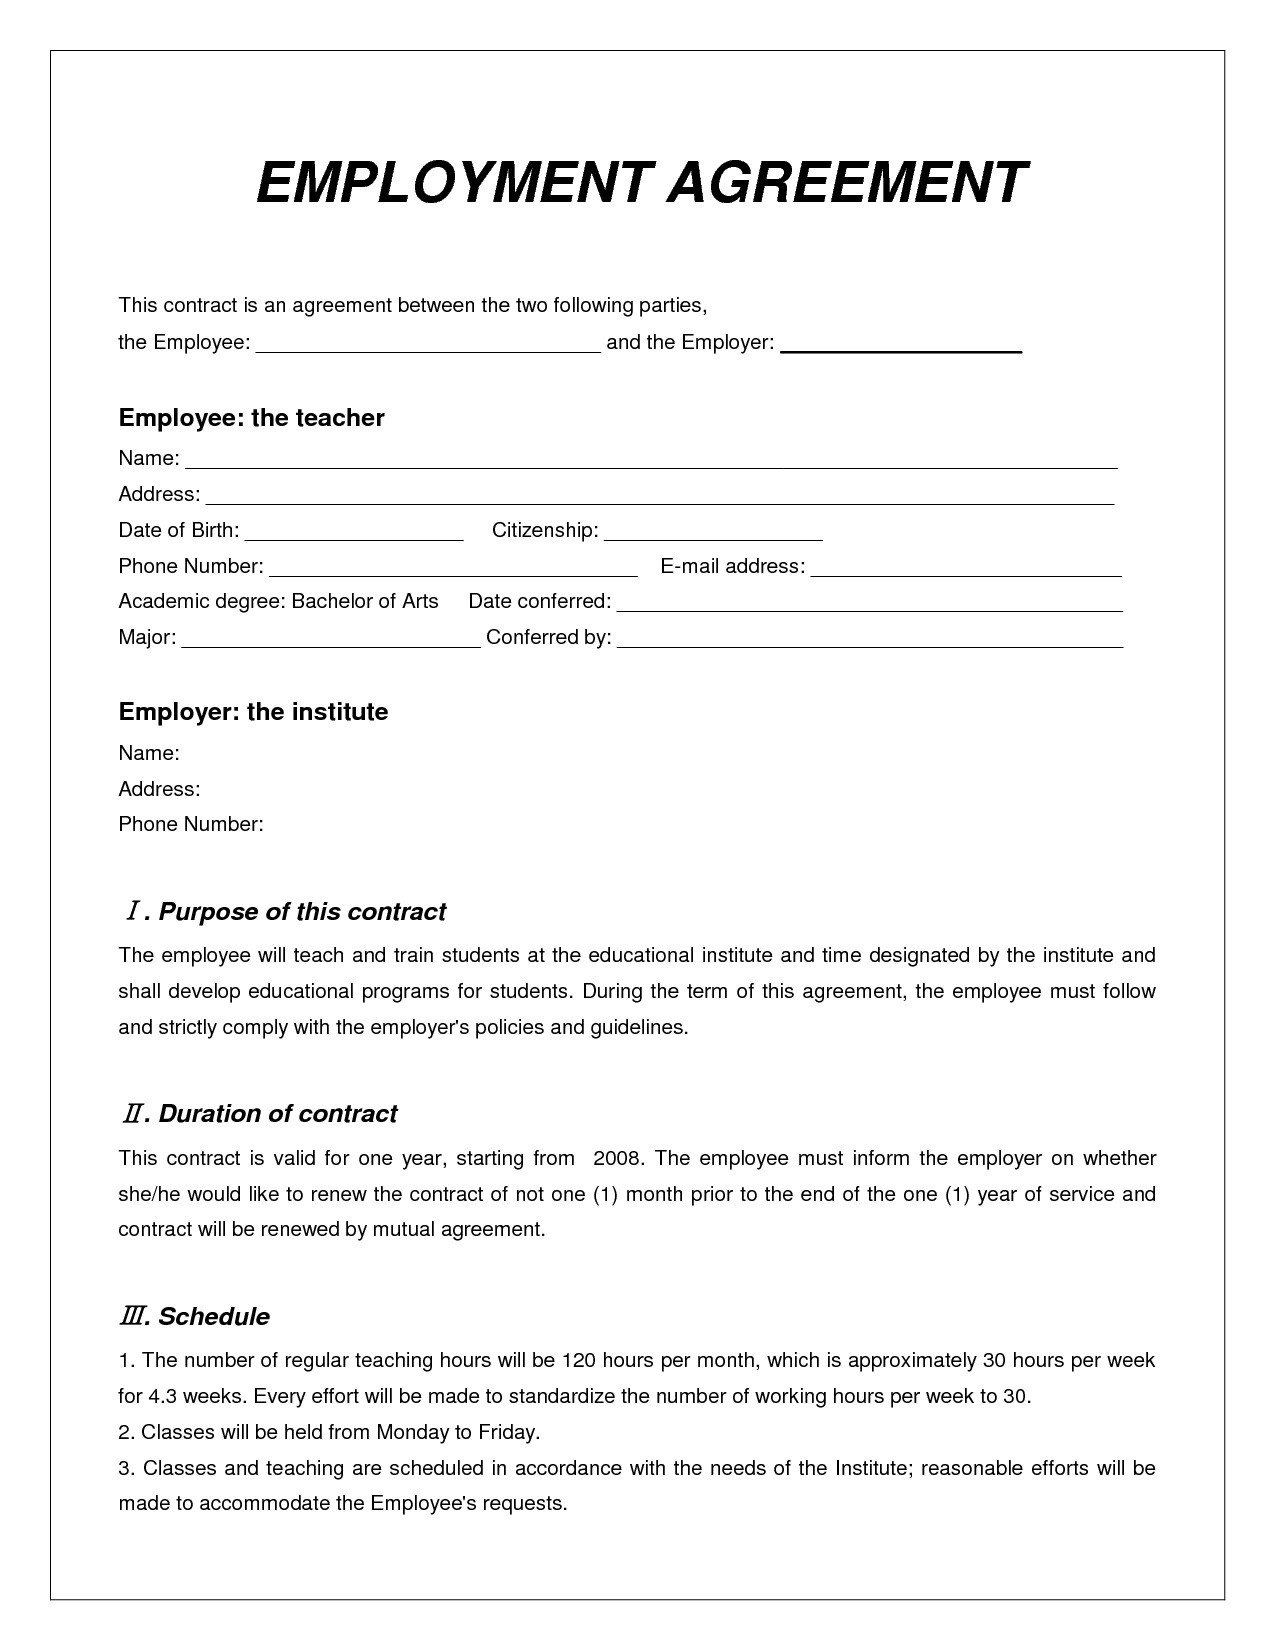 Free Contract Labor Agreement Form Contract Employee Agreement Sample Templates Resume Examples 09awxvdggm